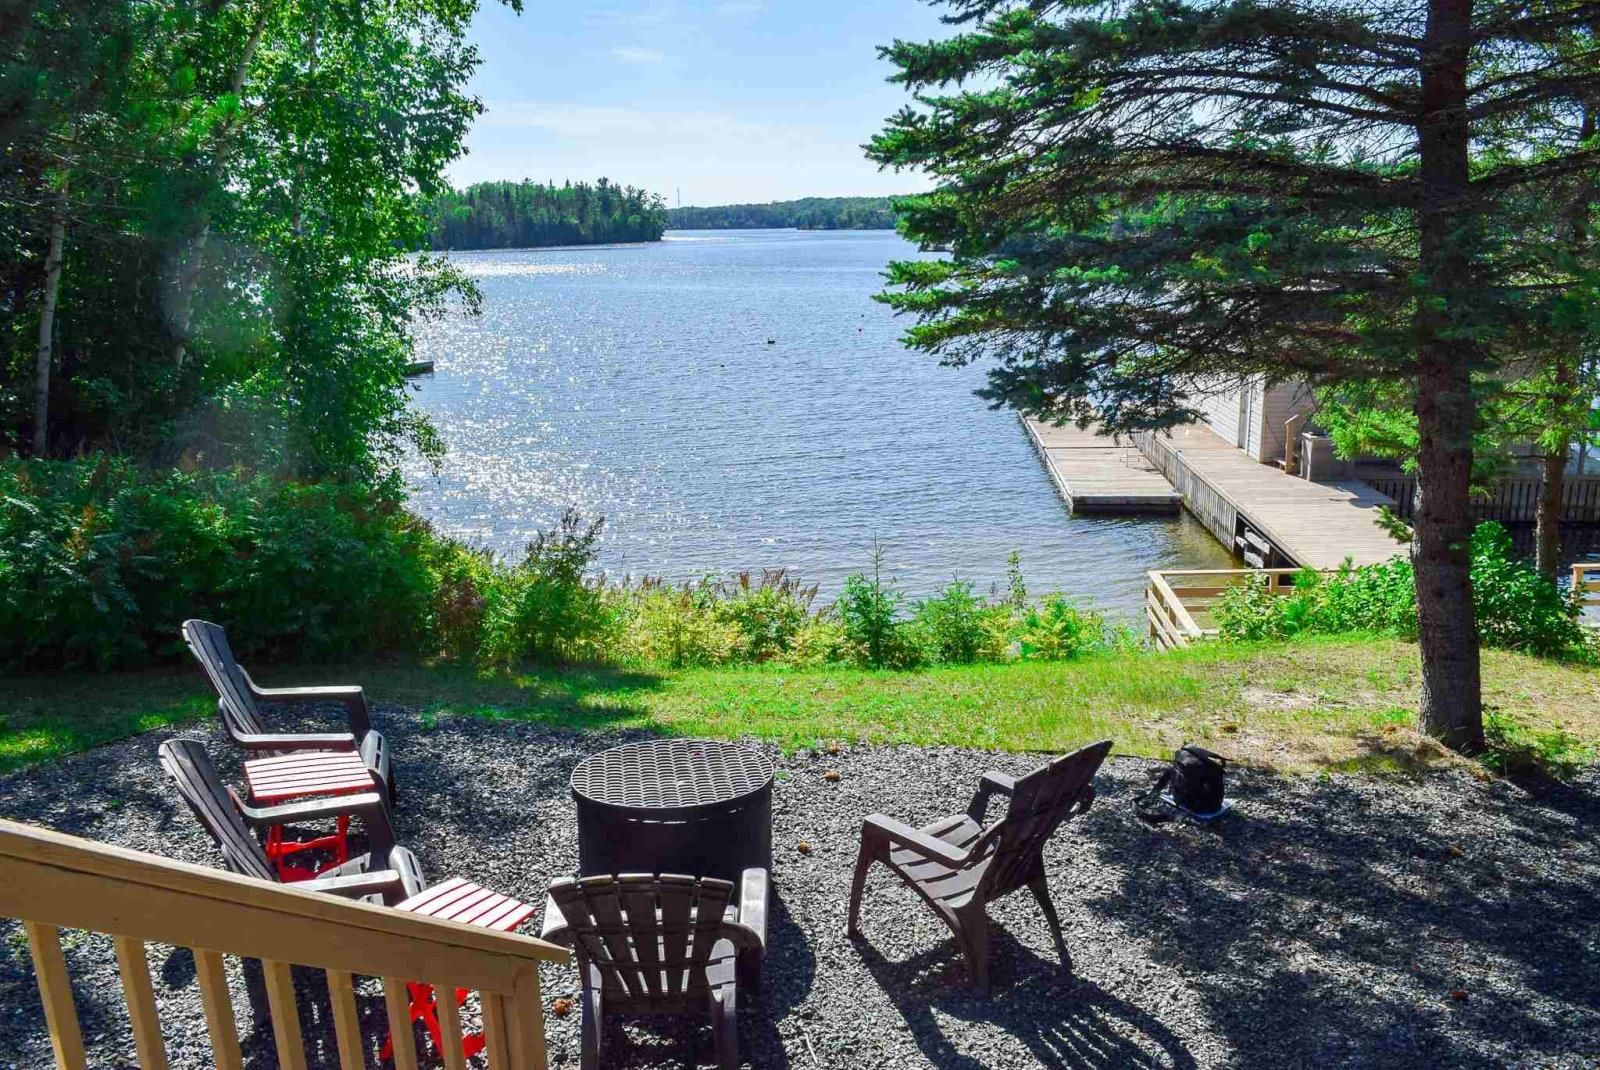 Main Photo: 11 Welcome Channel in South of Kenora: House for sale : MLS®# TB212413